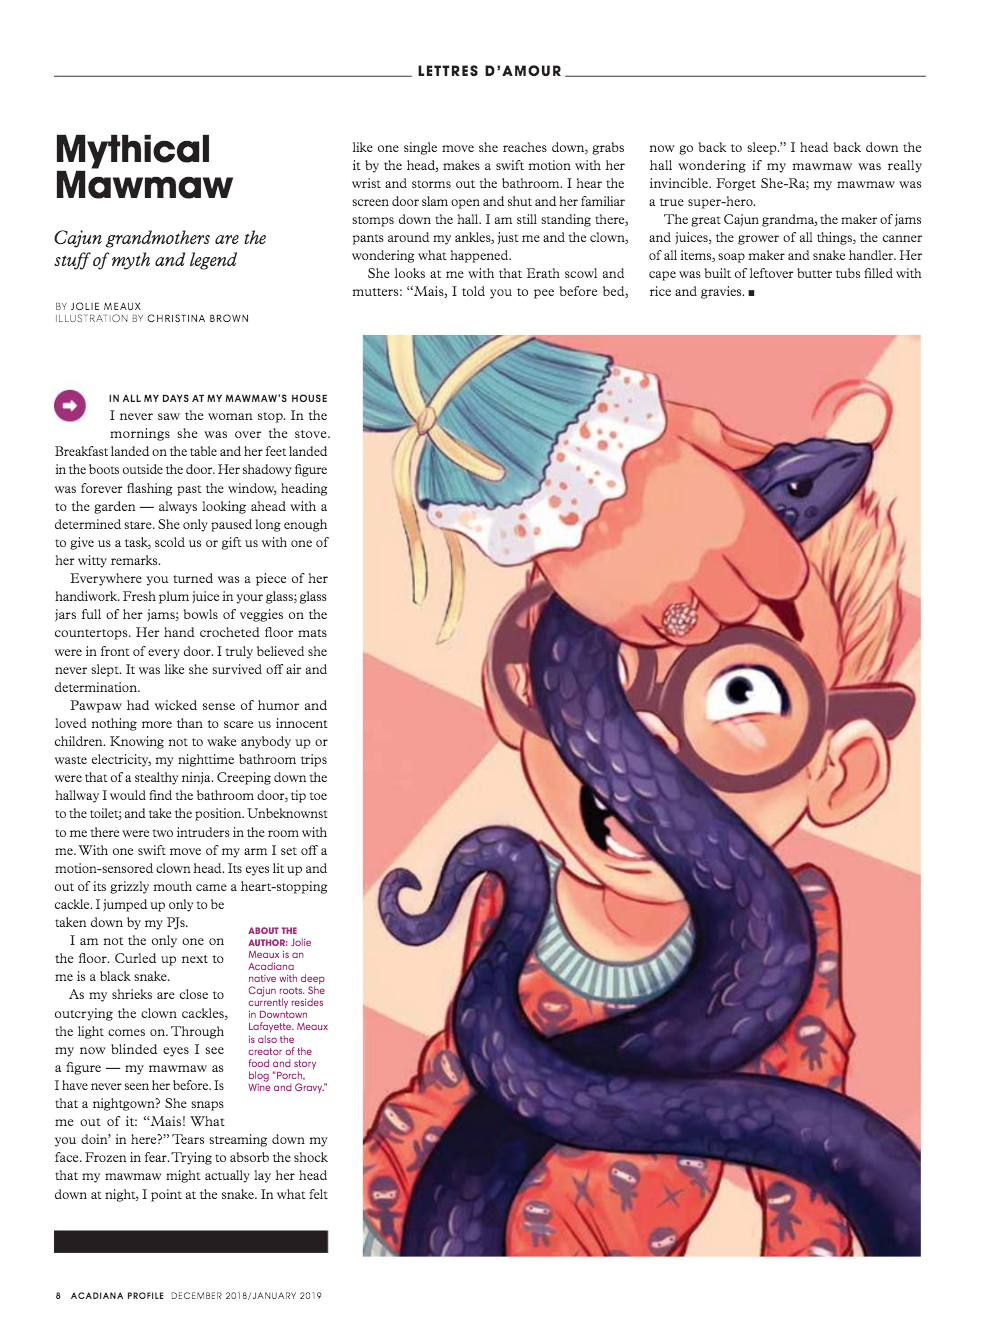 Mythical Mawmaw story (and an amazing illustration by Christina Brown) in Acadiana Profile Magazine.